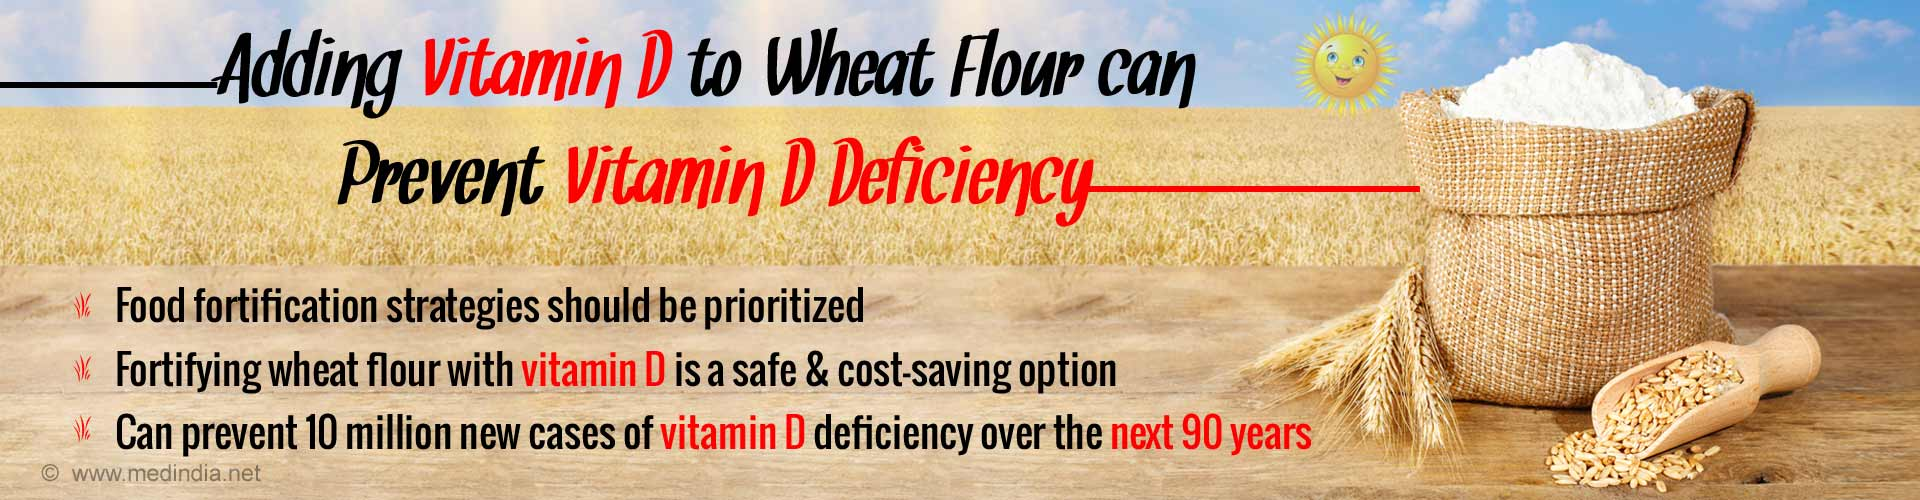 Fortifying Wheat Flour with Vitamin D Prevents 10 Million New Cases of Deficiency